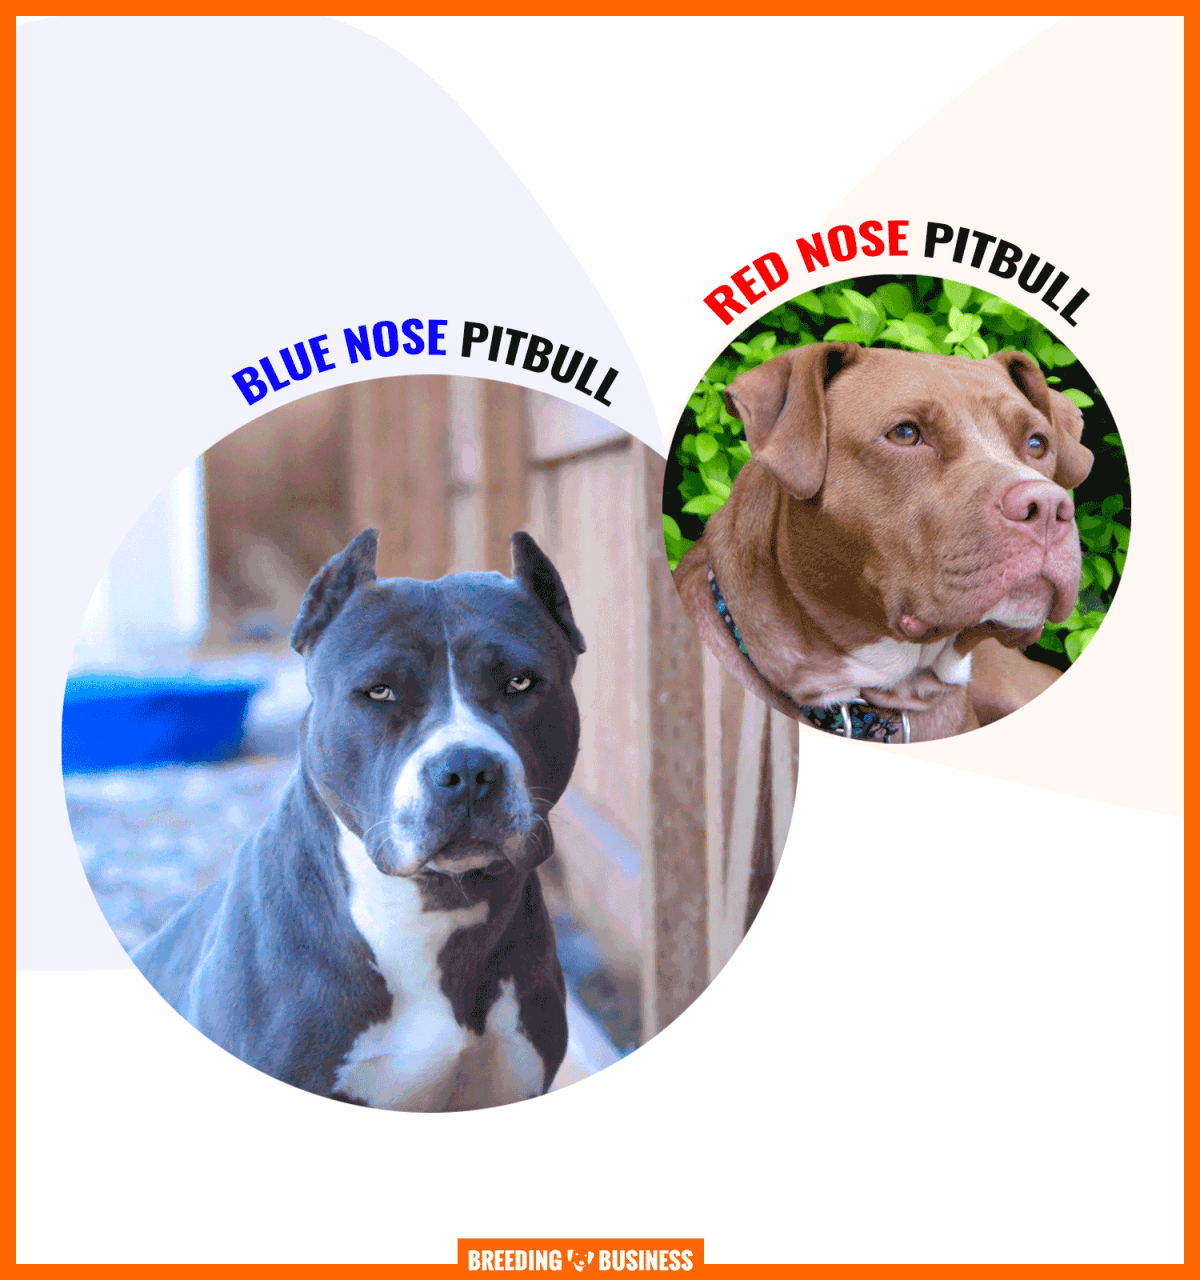 blue nose and red nose pitbulls